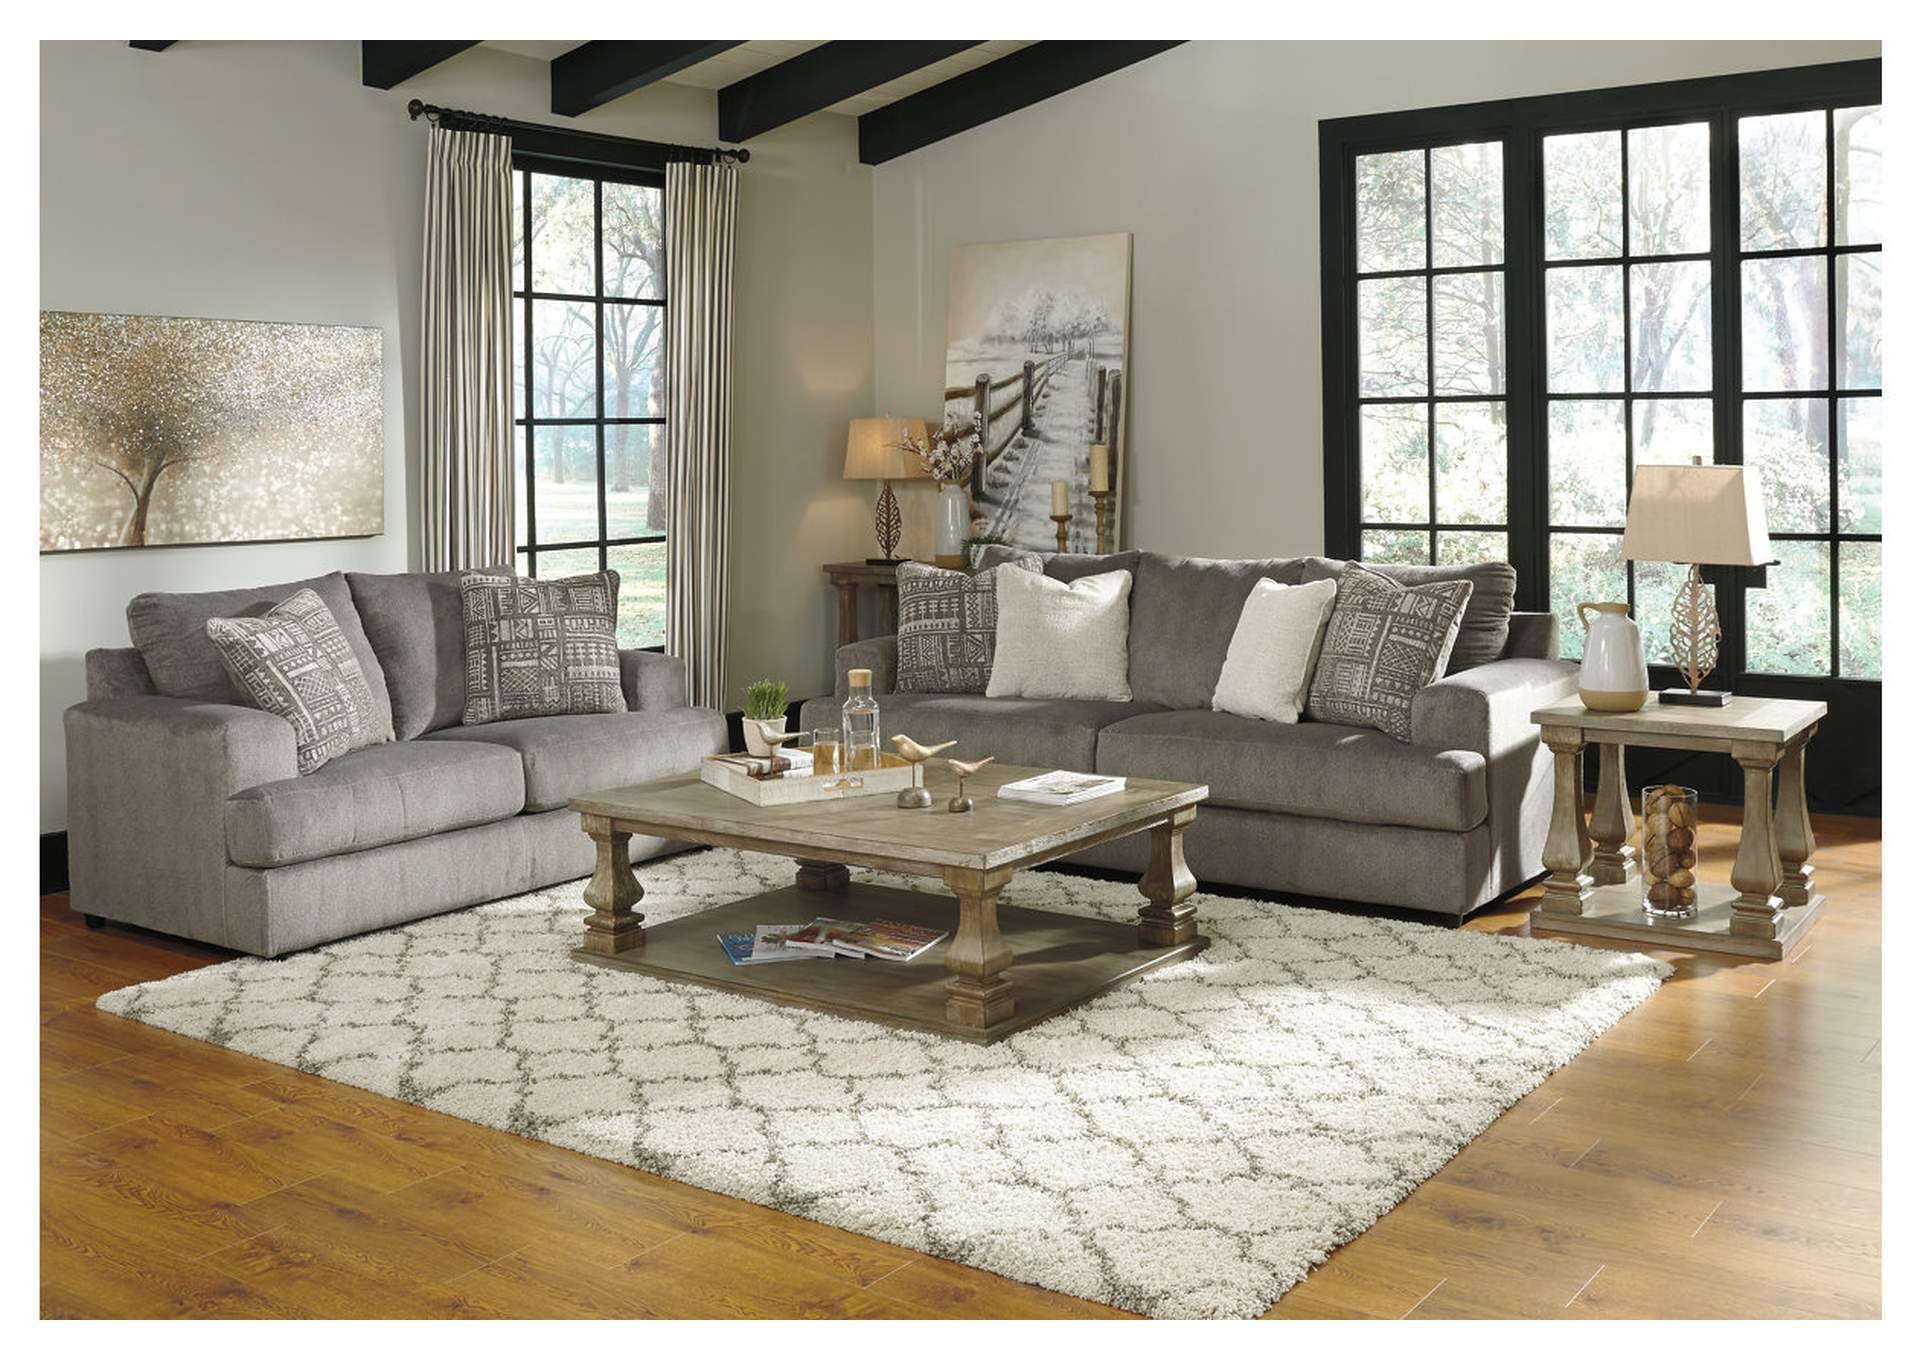 Soletren Ash Sofa & Loveseat,Signature Design By Ashley